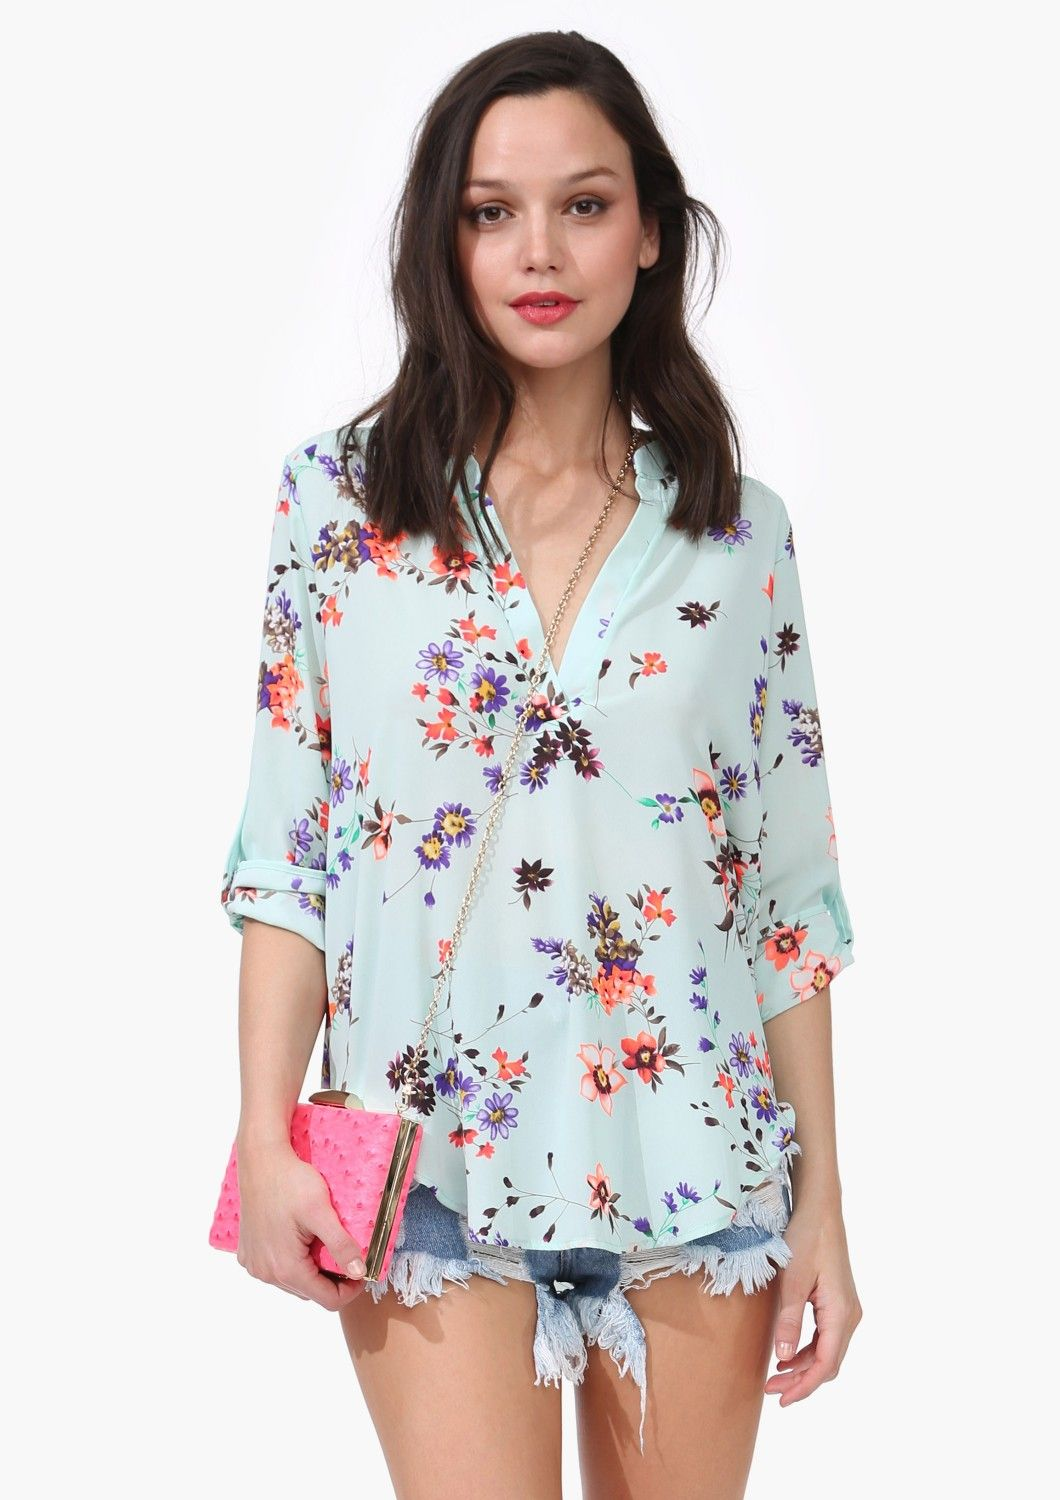 Art basel blouse spring fashion pinterest summer clothes and